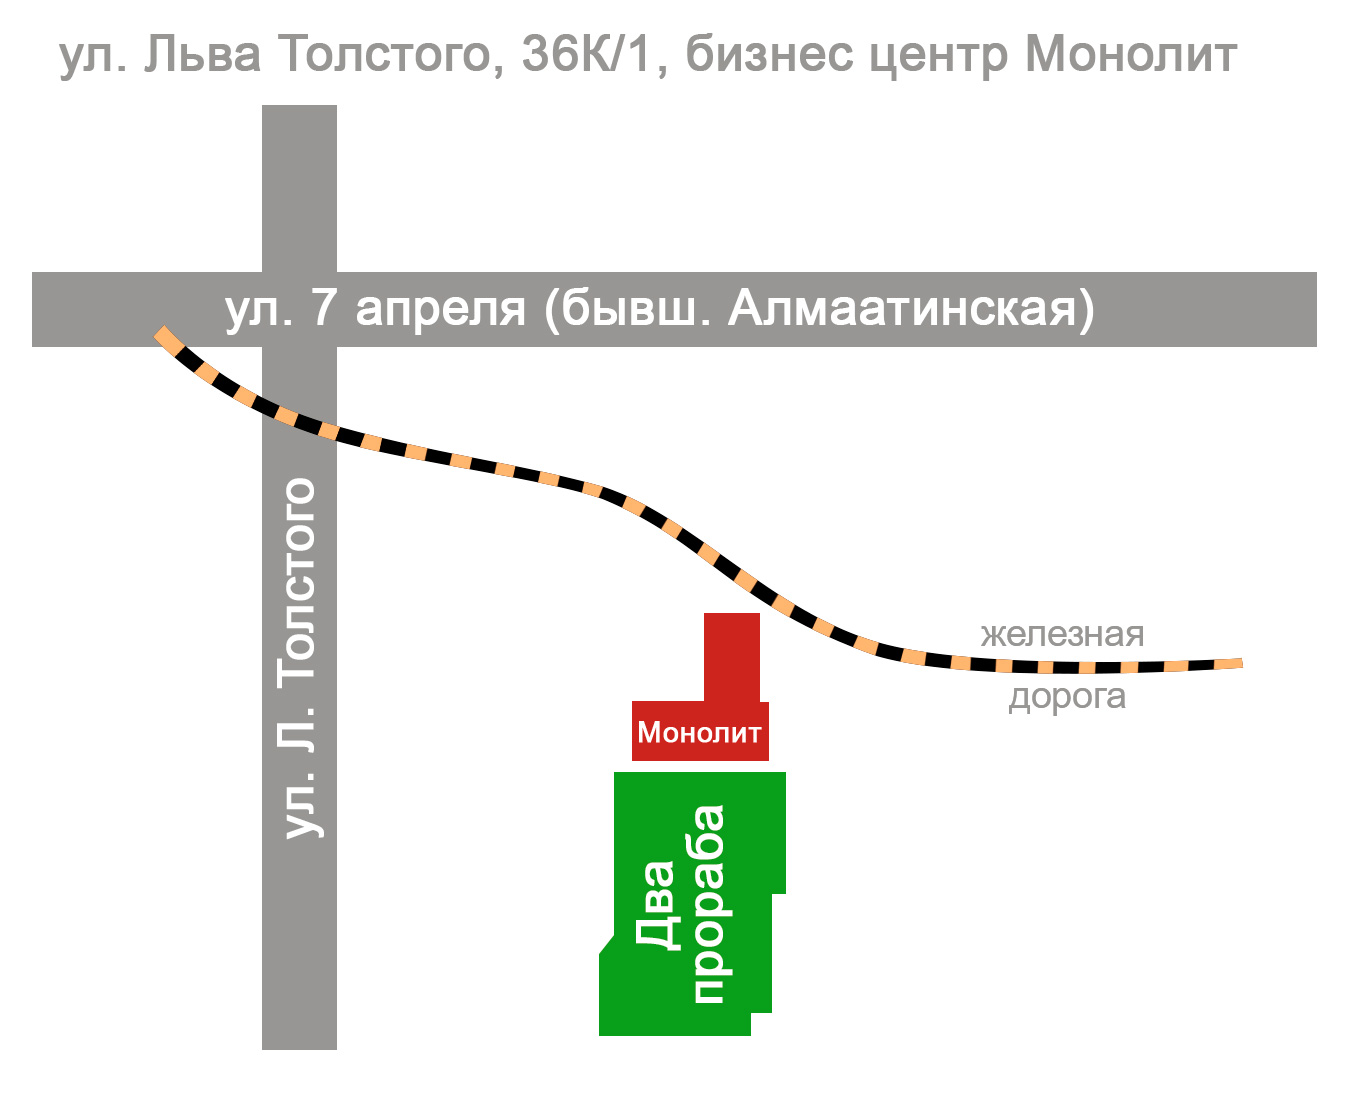 Road map to Booking and sales office in Bishkek